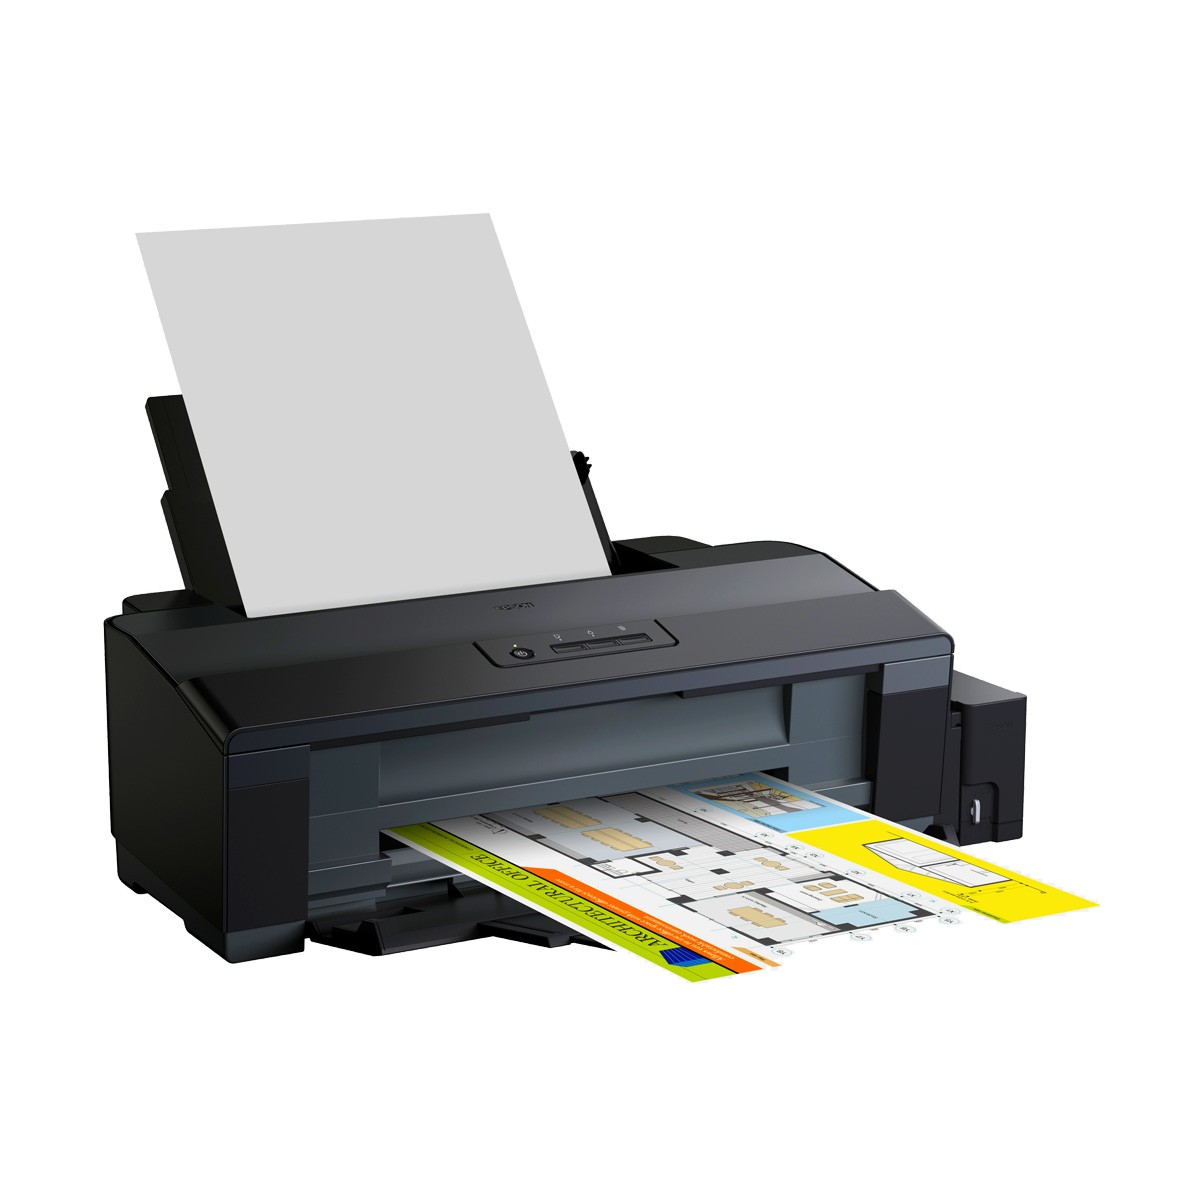 Epson Adjustment Program L1300